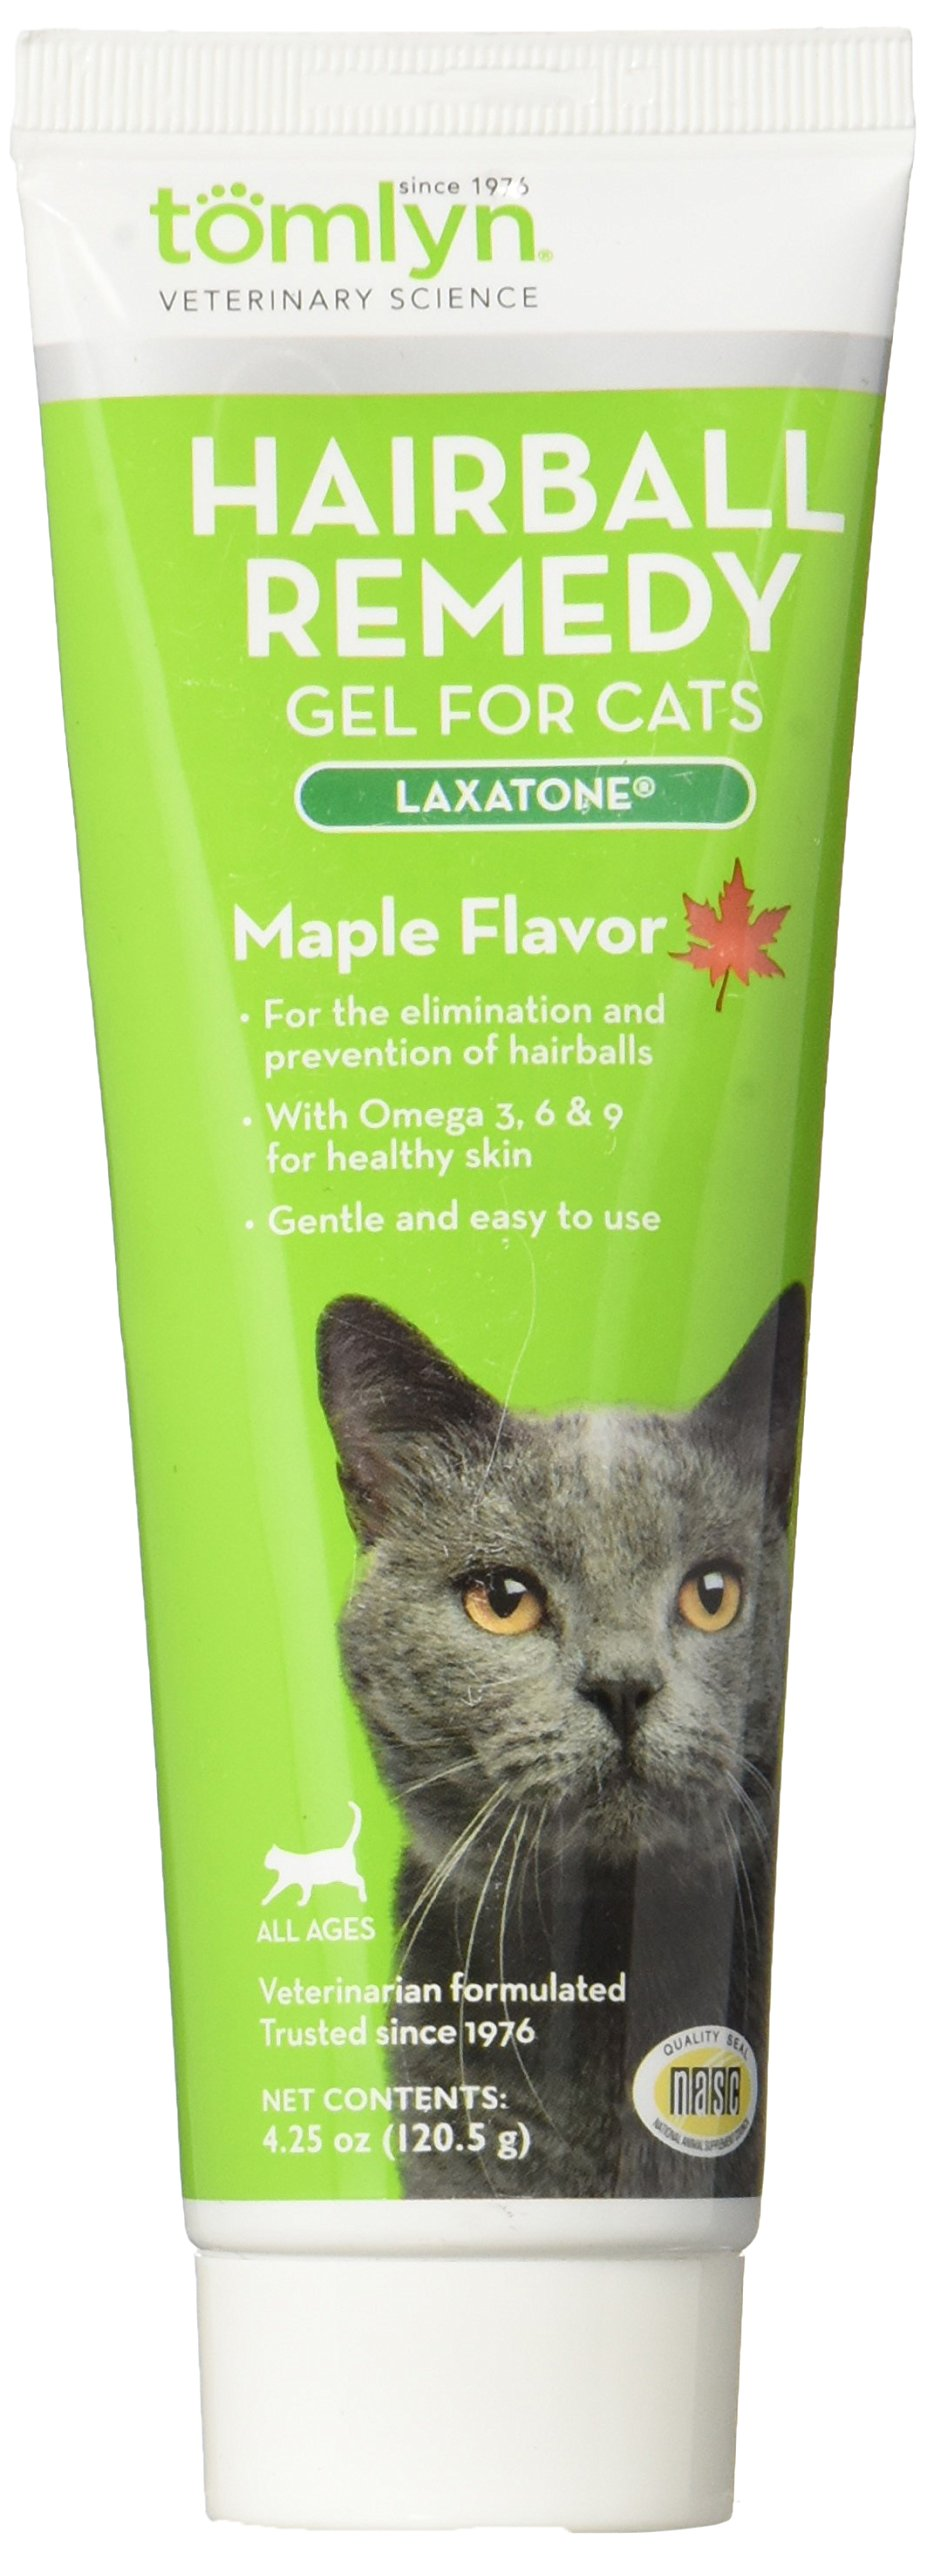 Tomlyn Hairball Remedy Maple Flavor Laxatone 4.25 oz for Cats